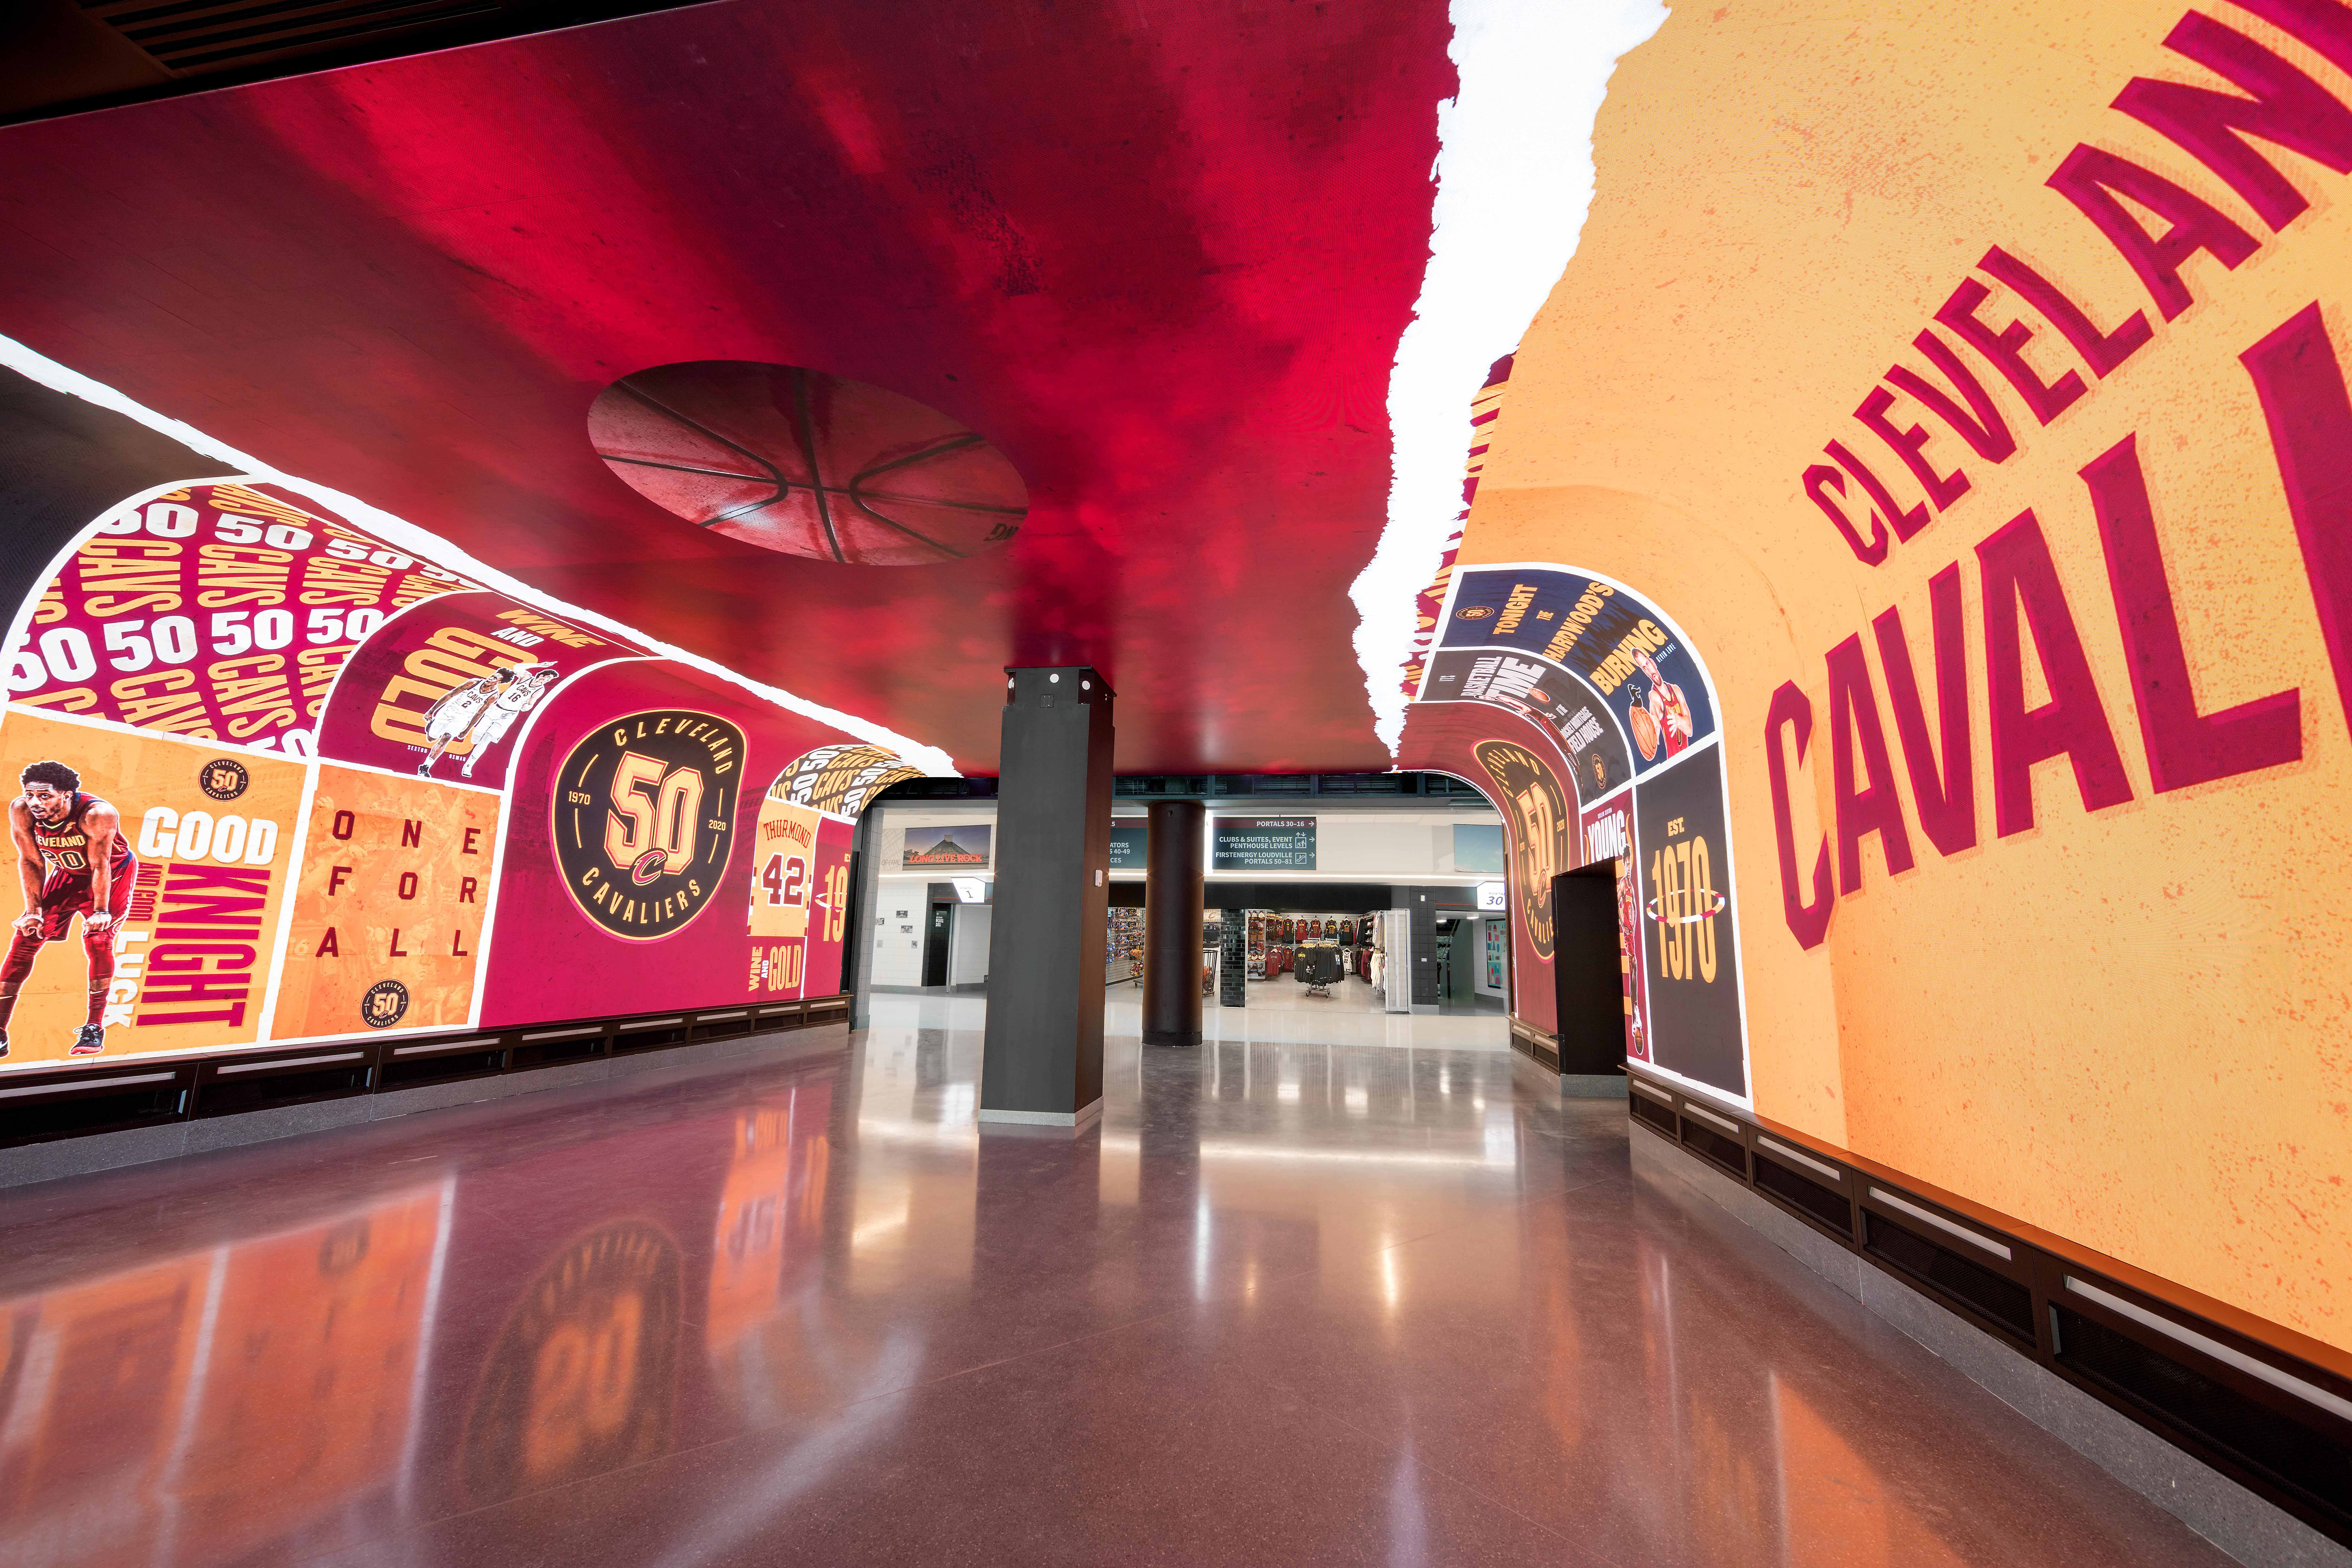 Immersive Fan Experiences - LED Power Portal. Credit: Cleveland Cavaliers Norm Trepal Photography